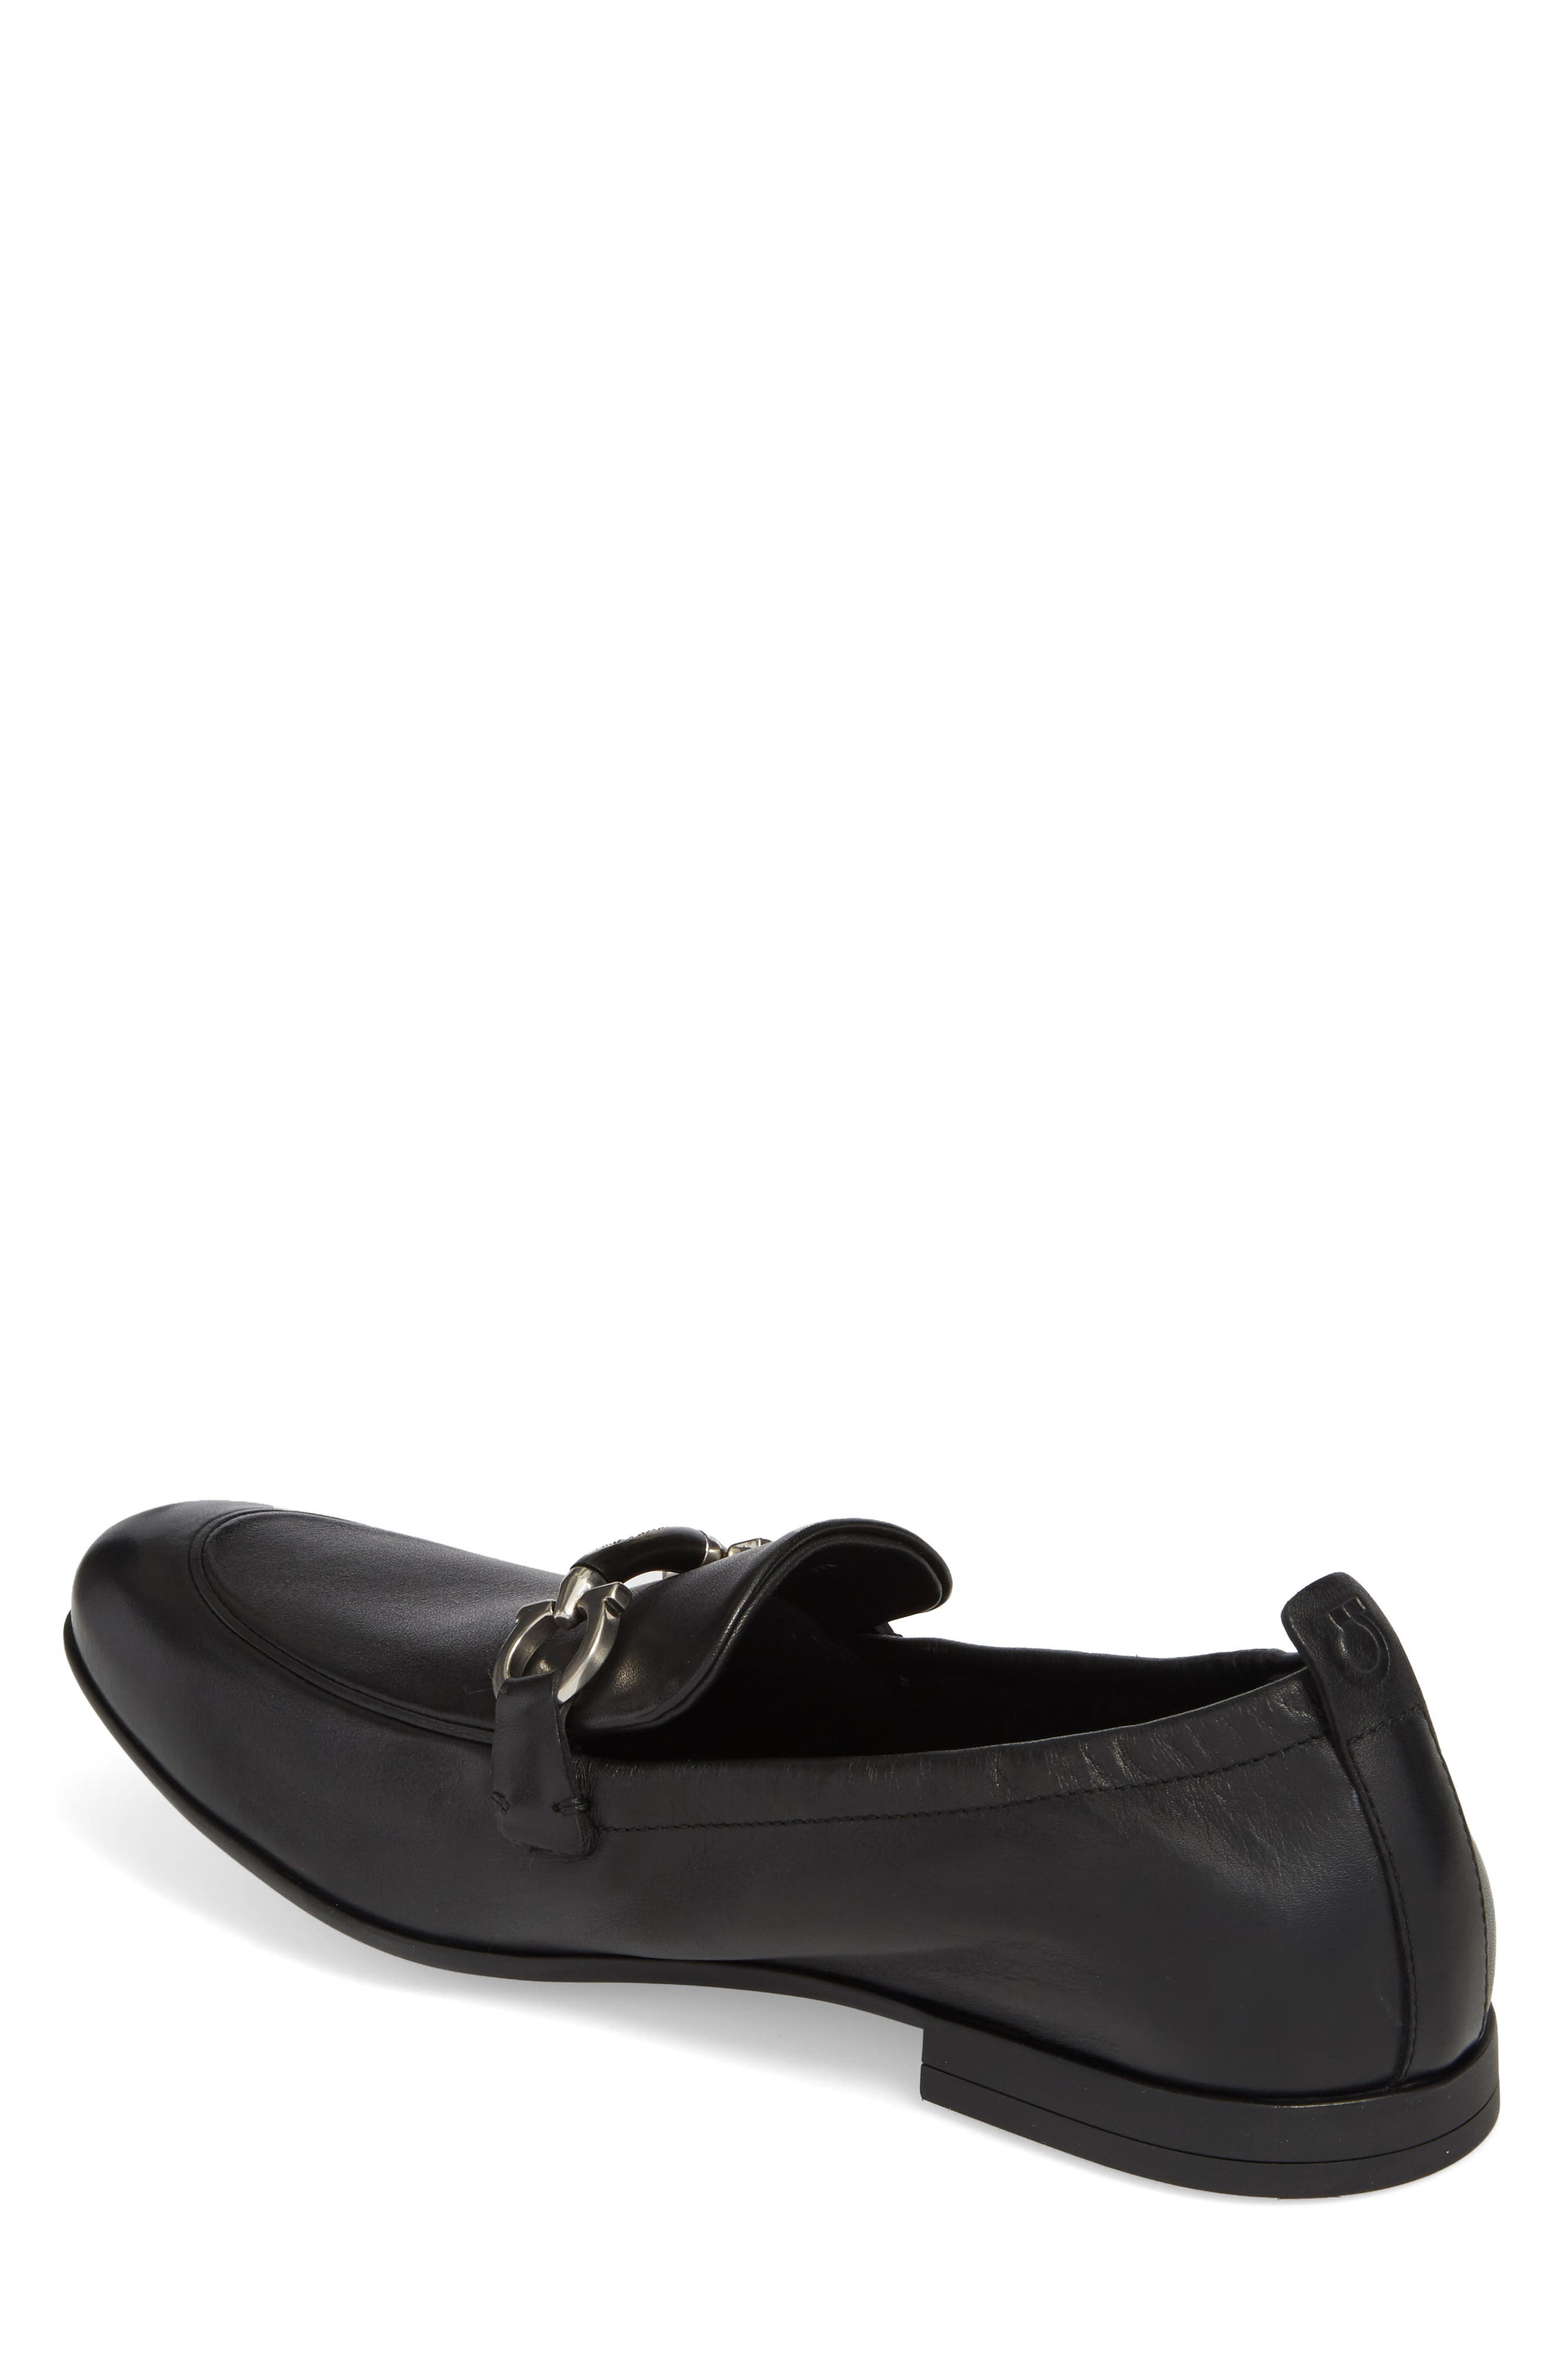 Celso Bit Loafer,                             Alternate thumbnail 2, color,                             Nero